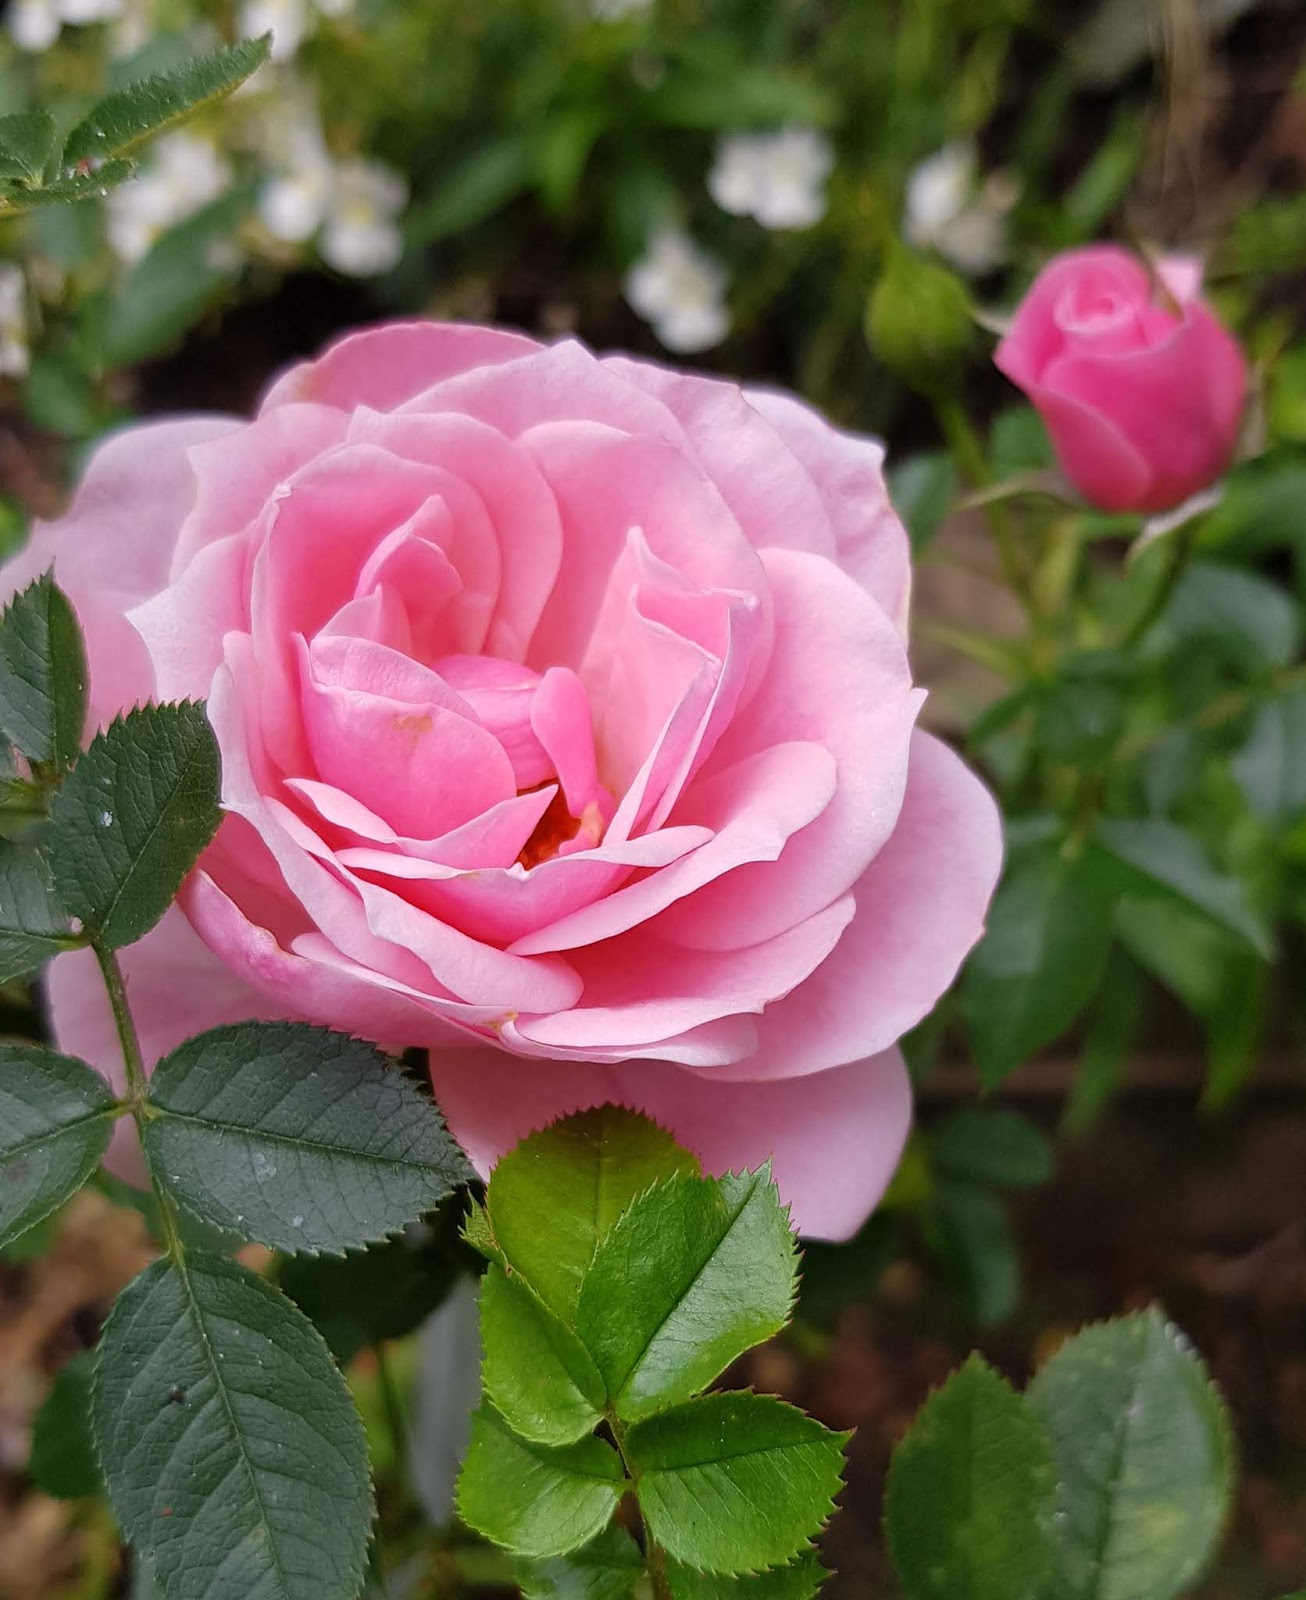 A beautiful rose still blooming in the mild London weather of October 20218